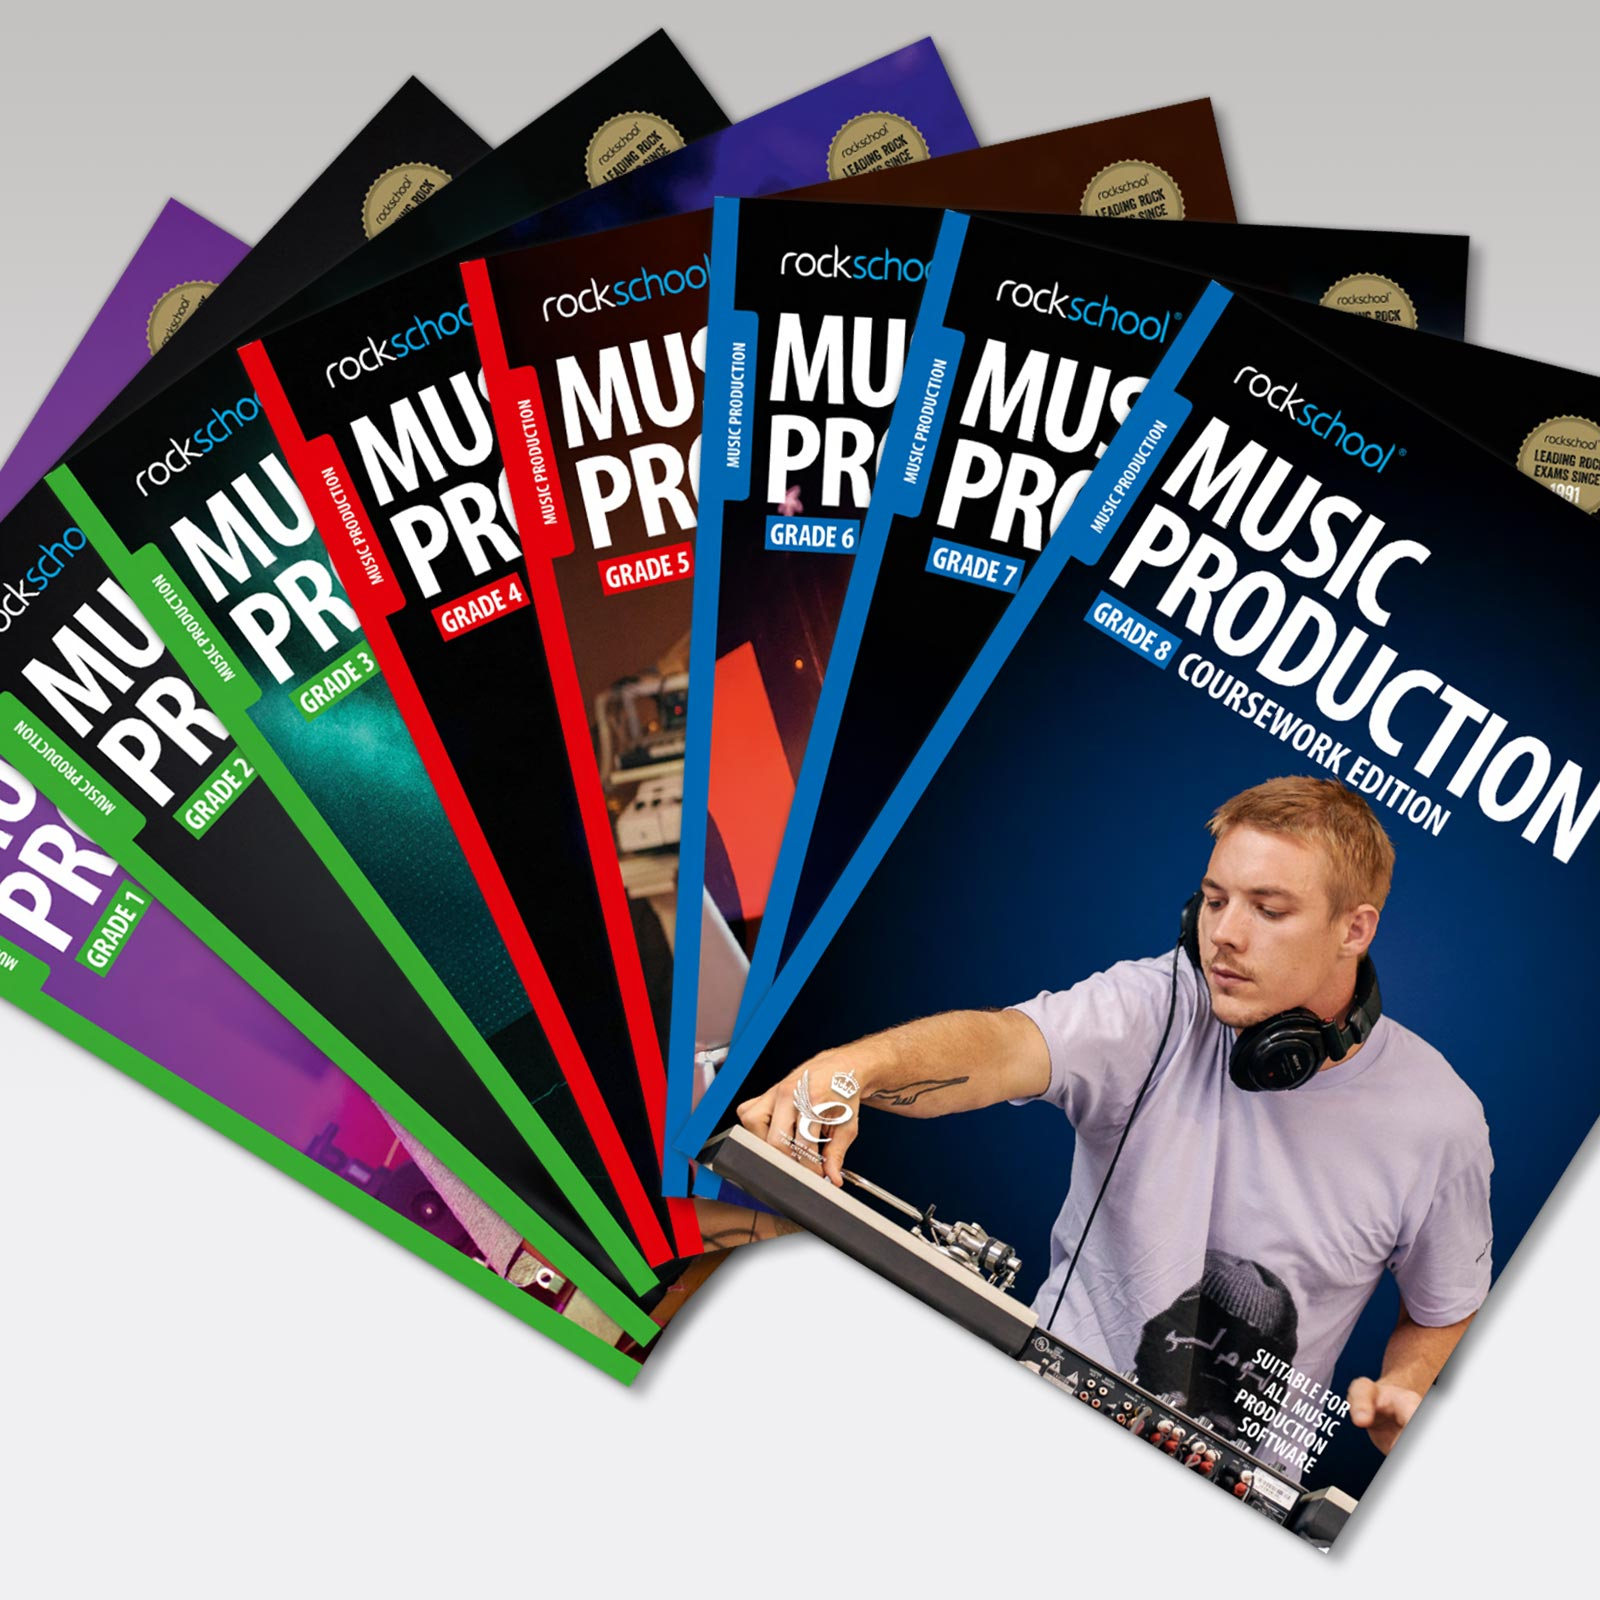 Music Production Book Covers